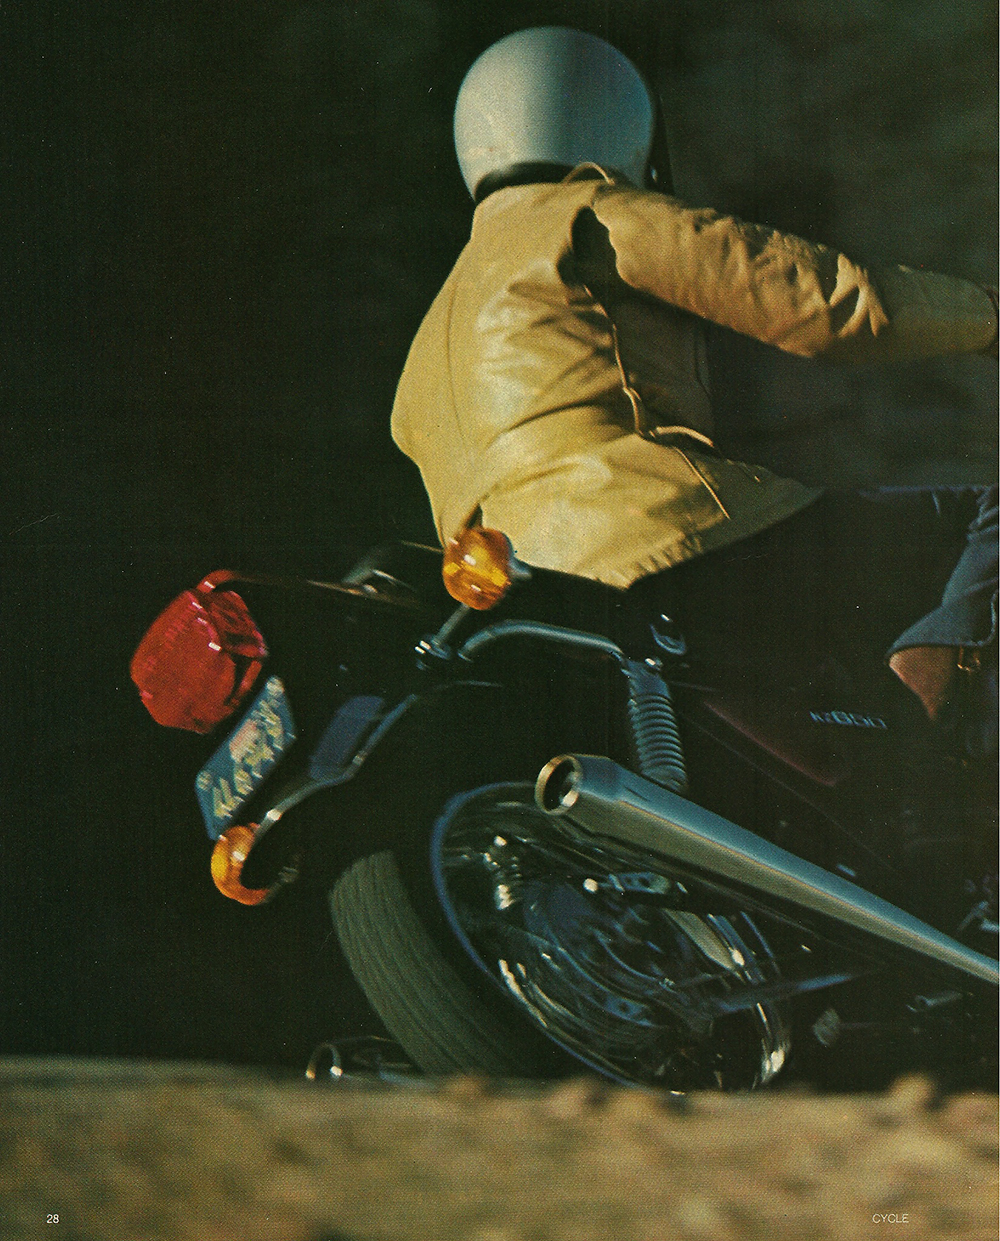 1976 Kawasaki KZ650 road test 01.jpg